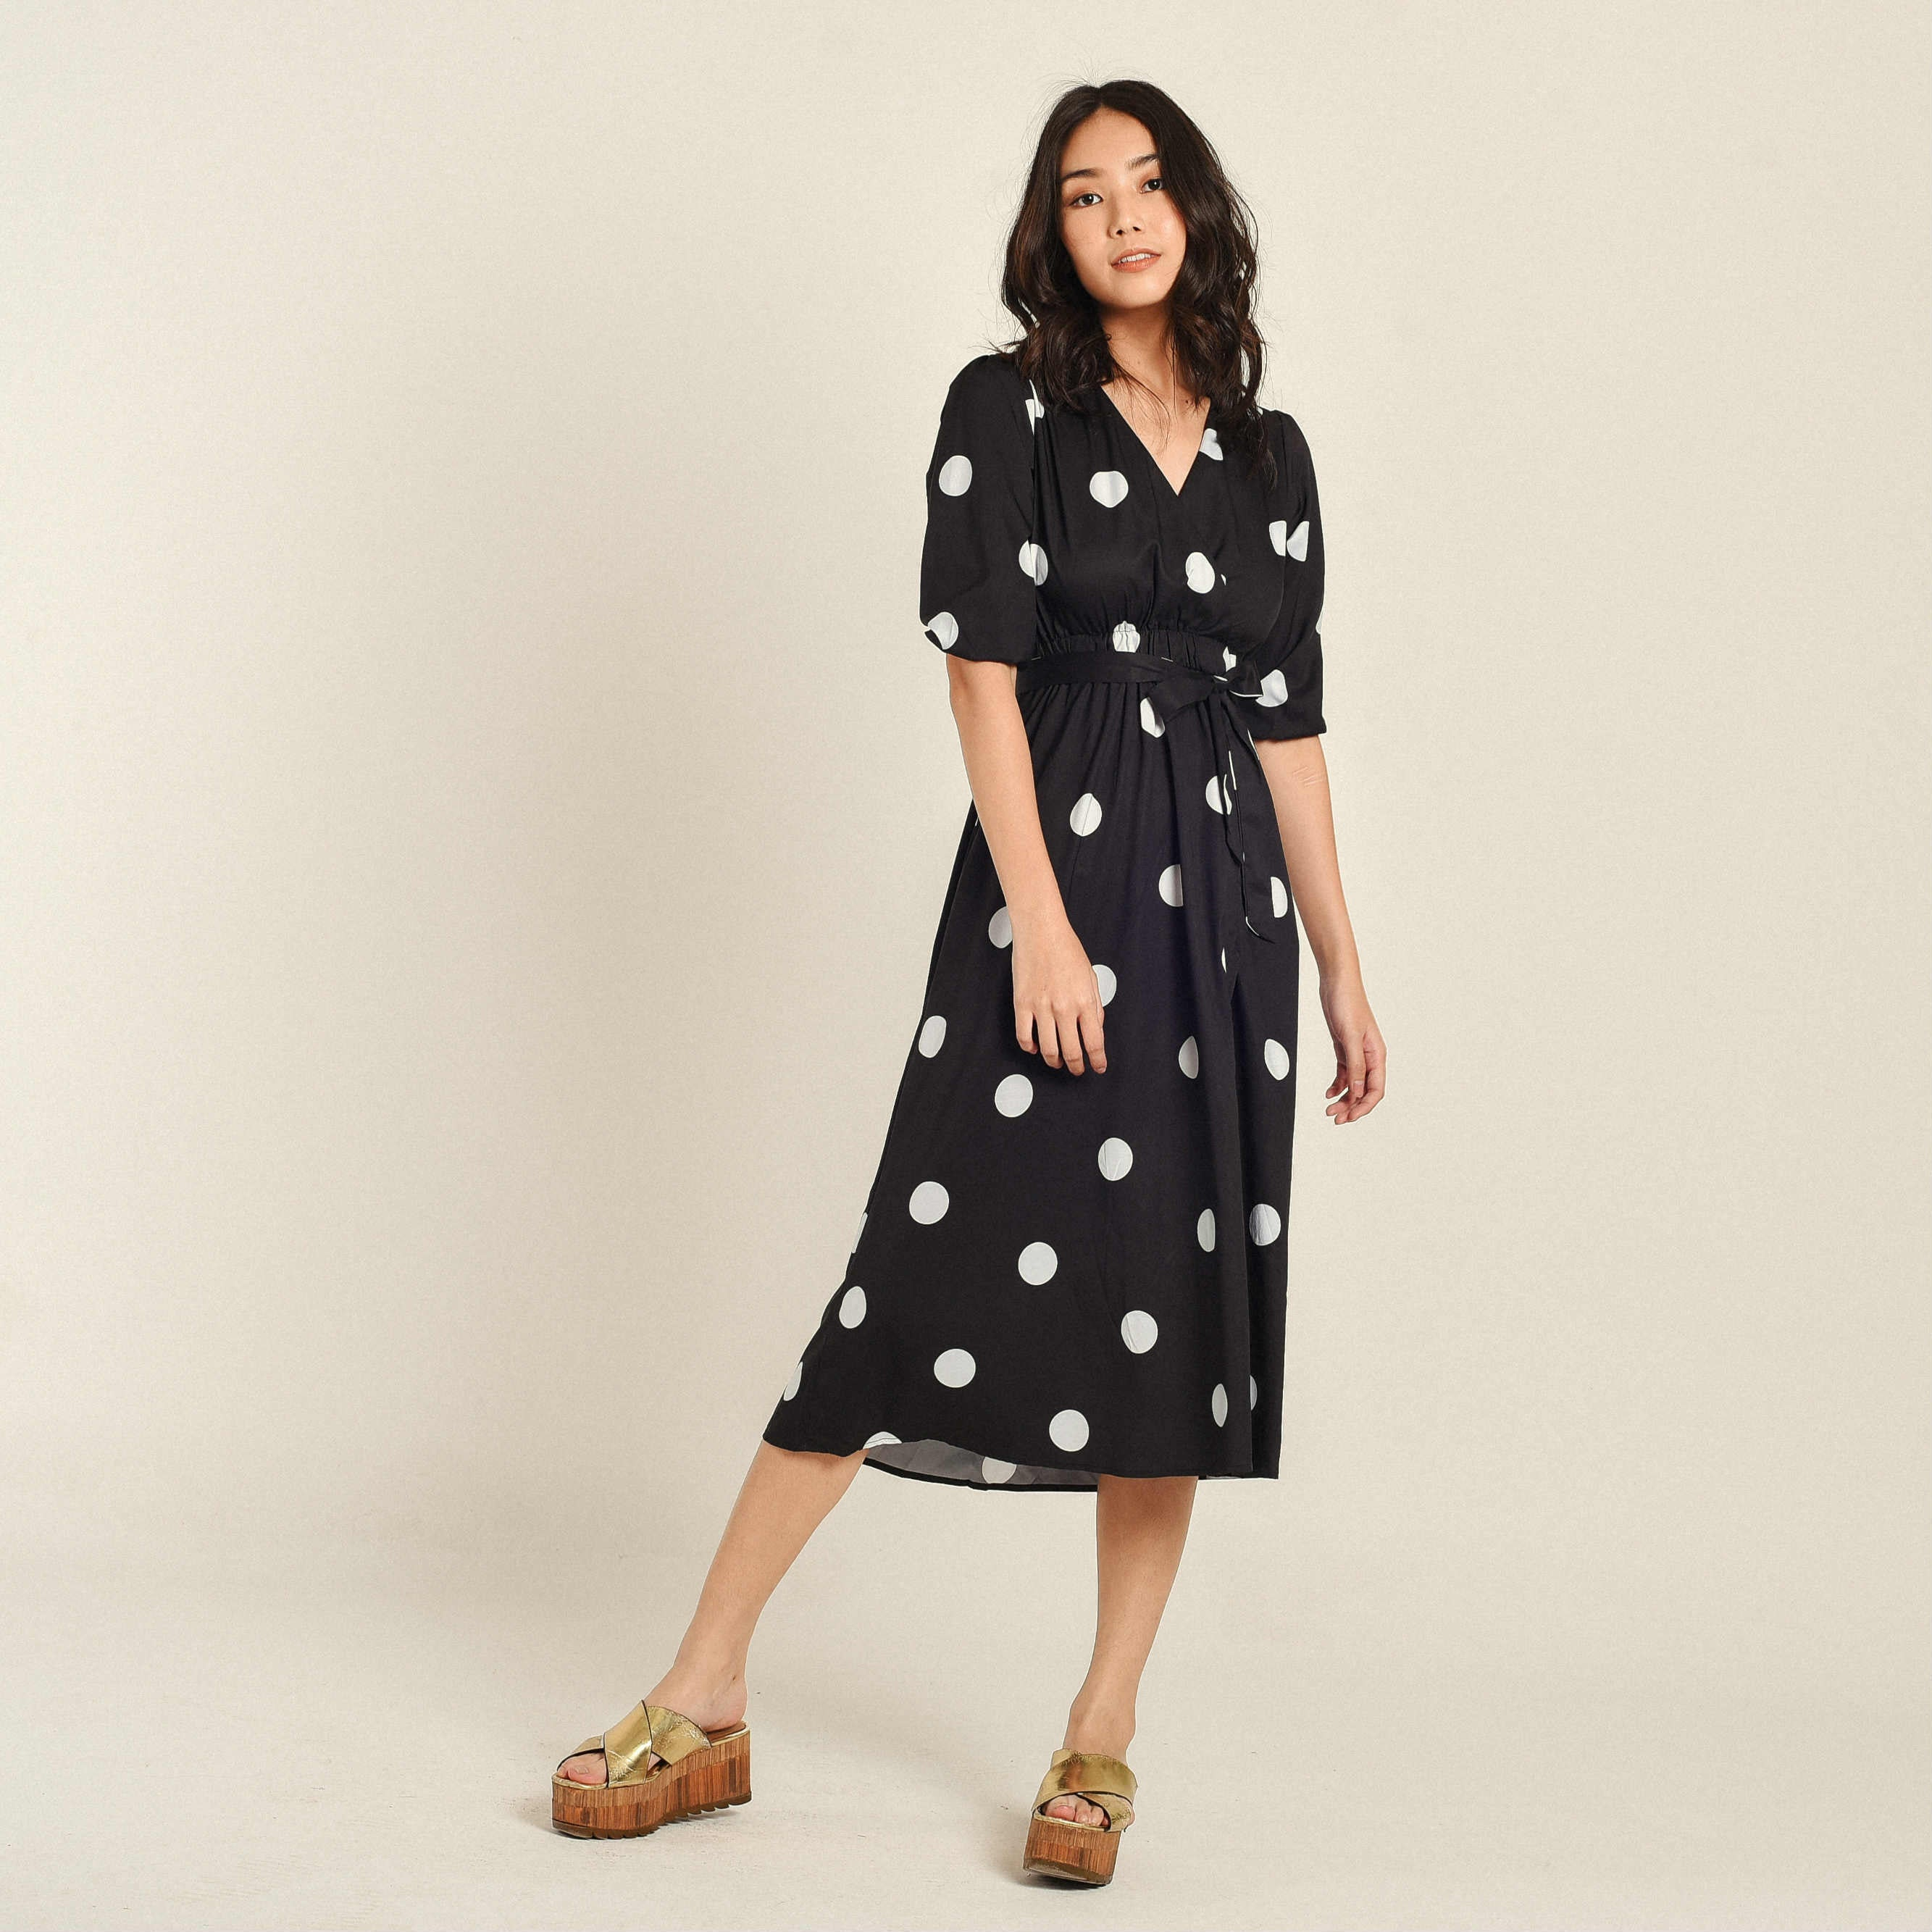 Esther Polka Black Dress